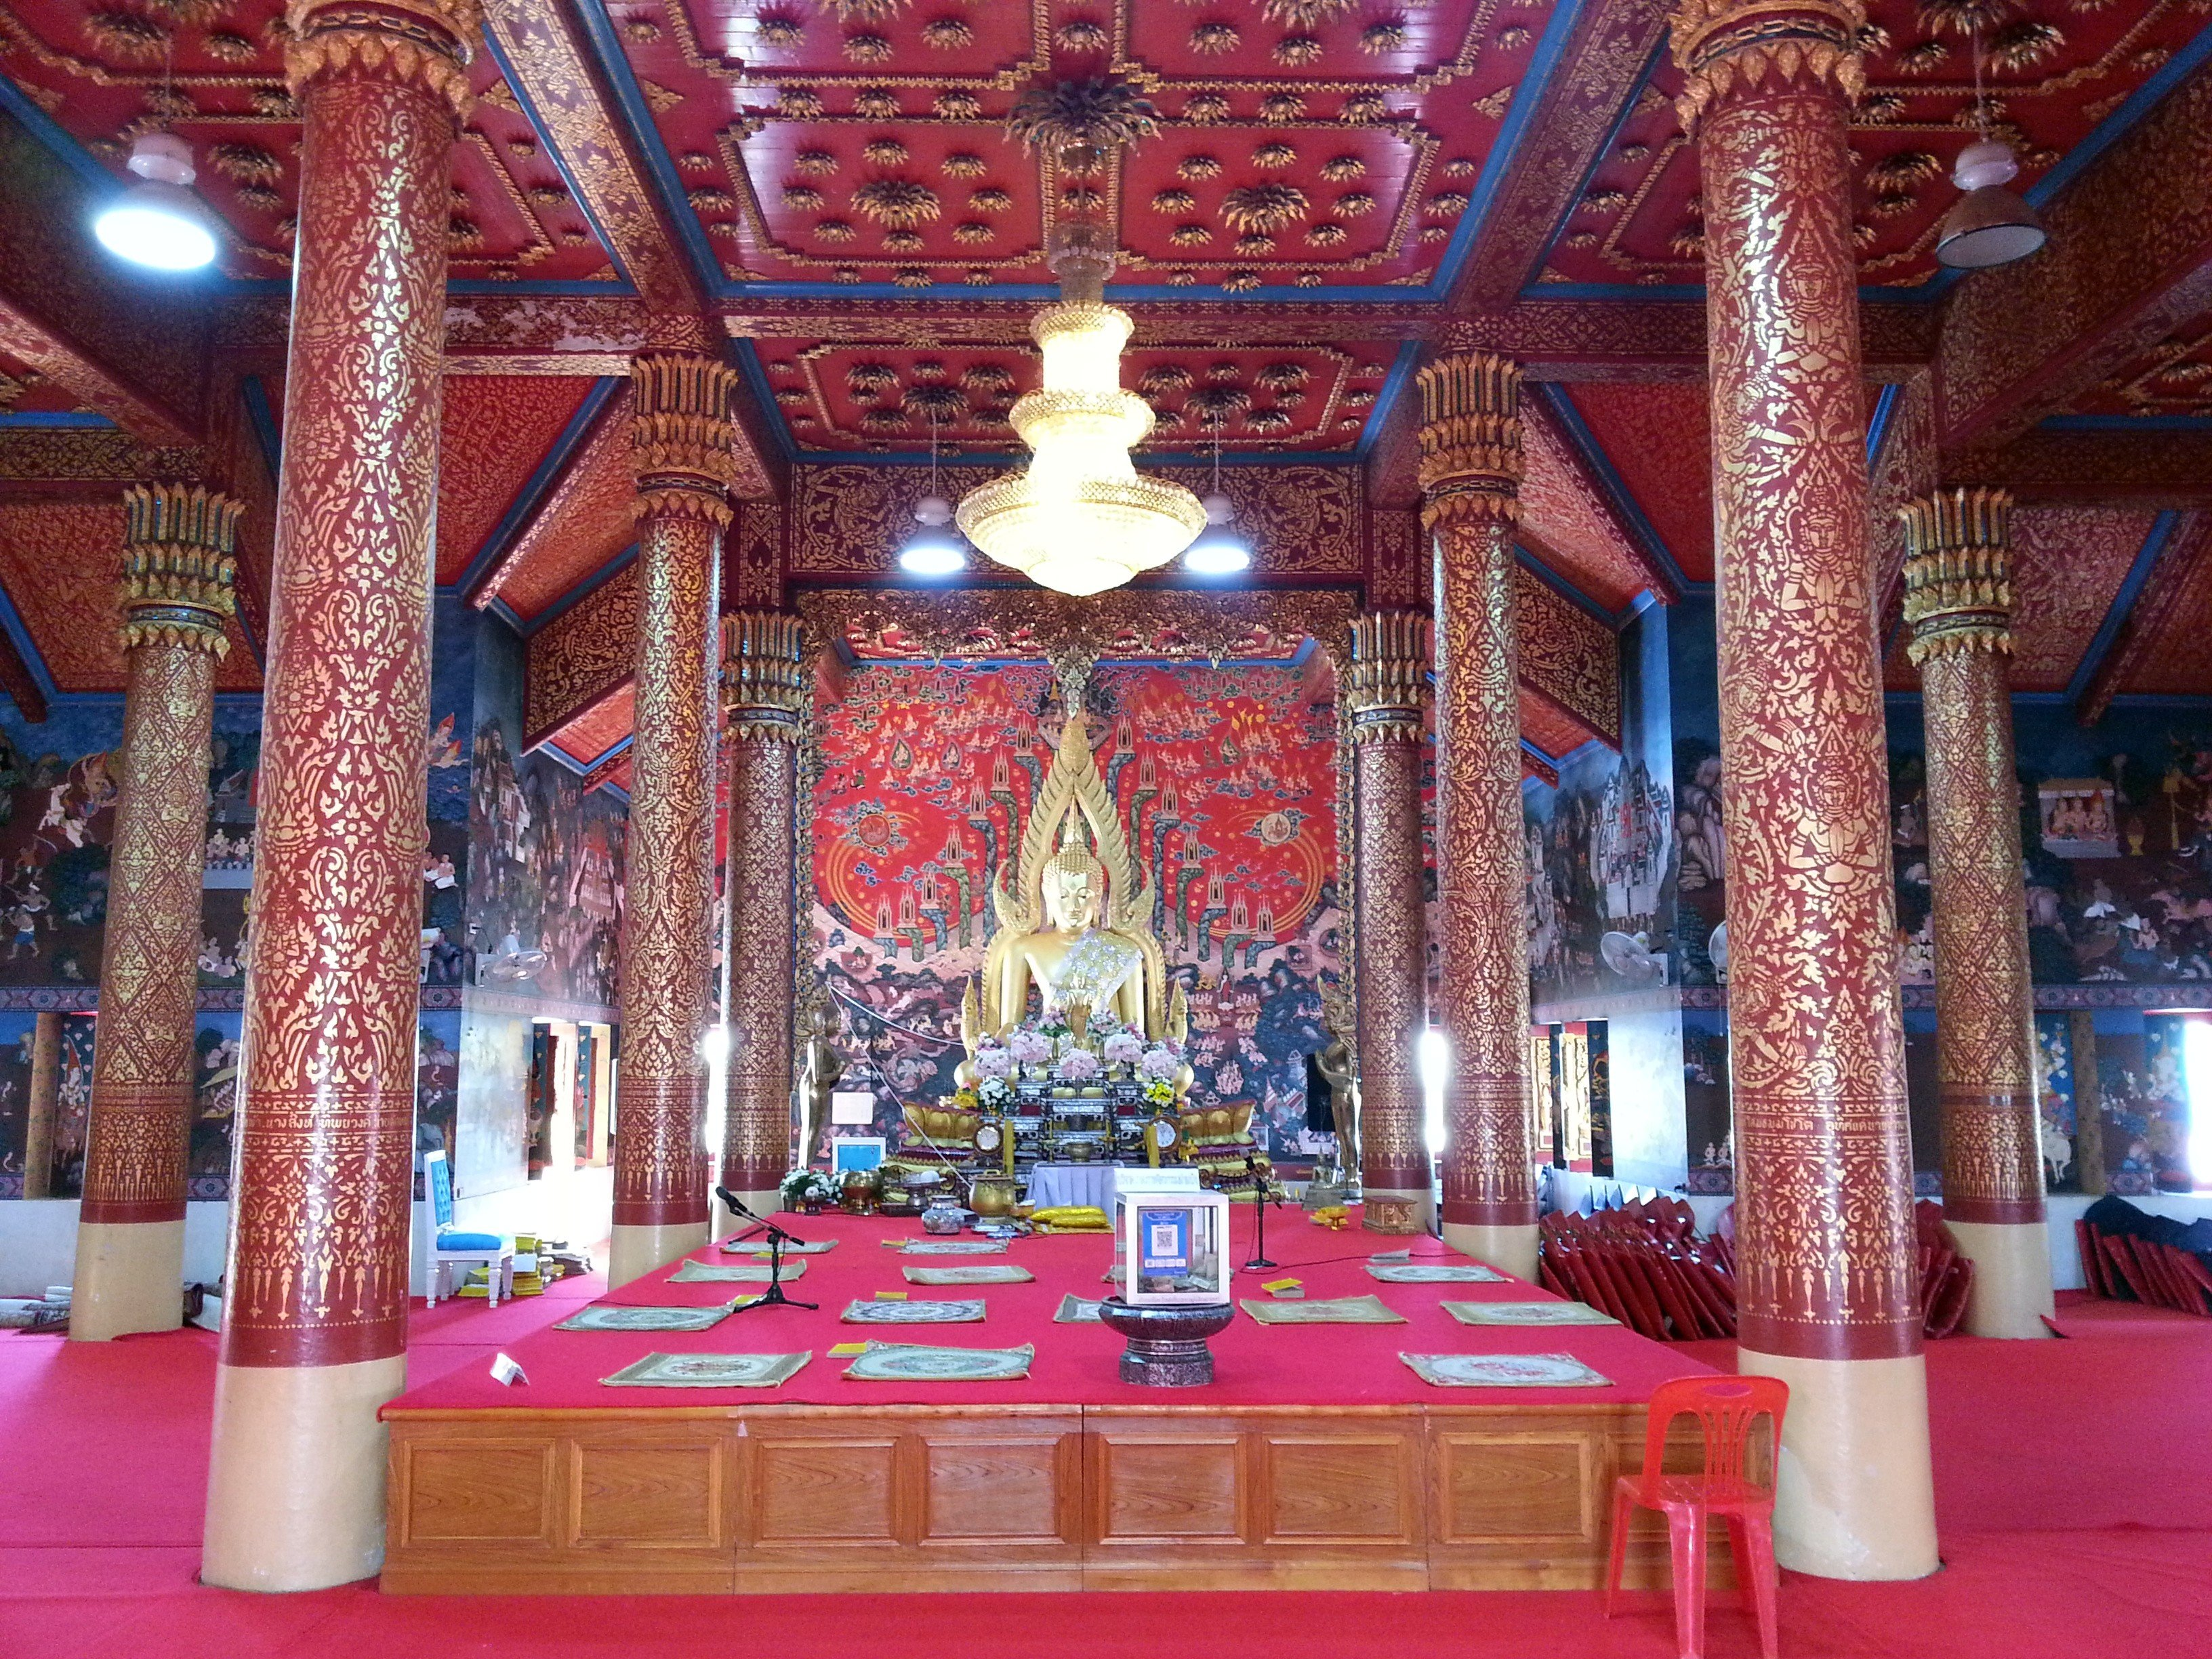 Inside the shrine hall at Wat Phra That Choeng Chum